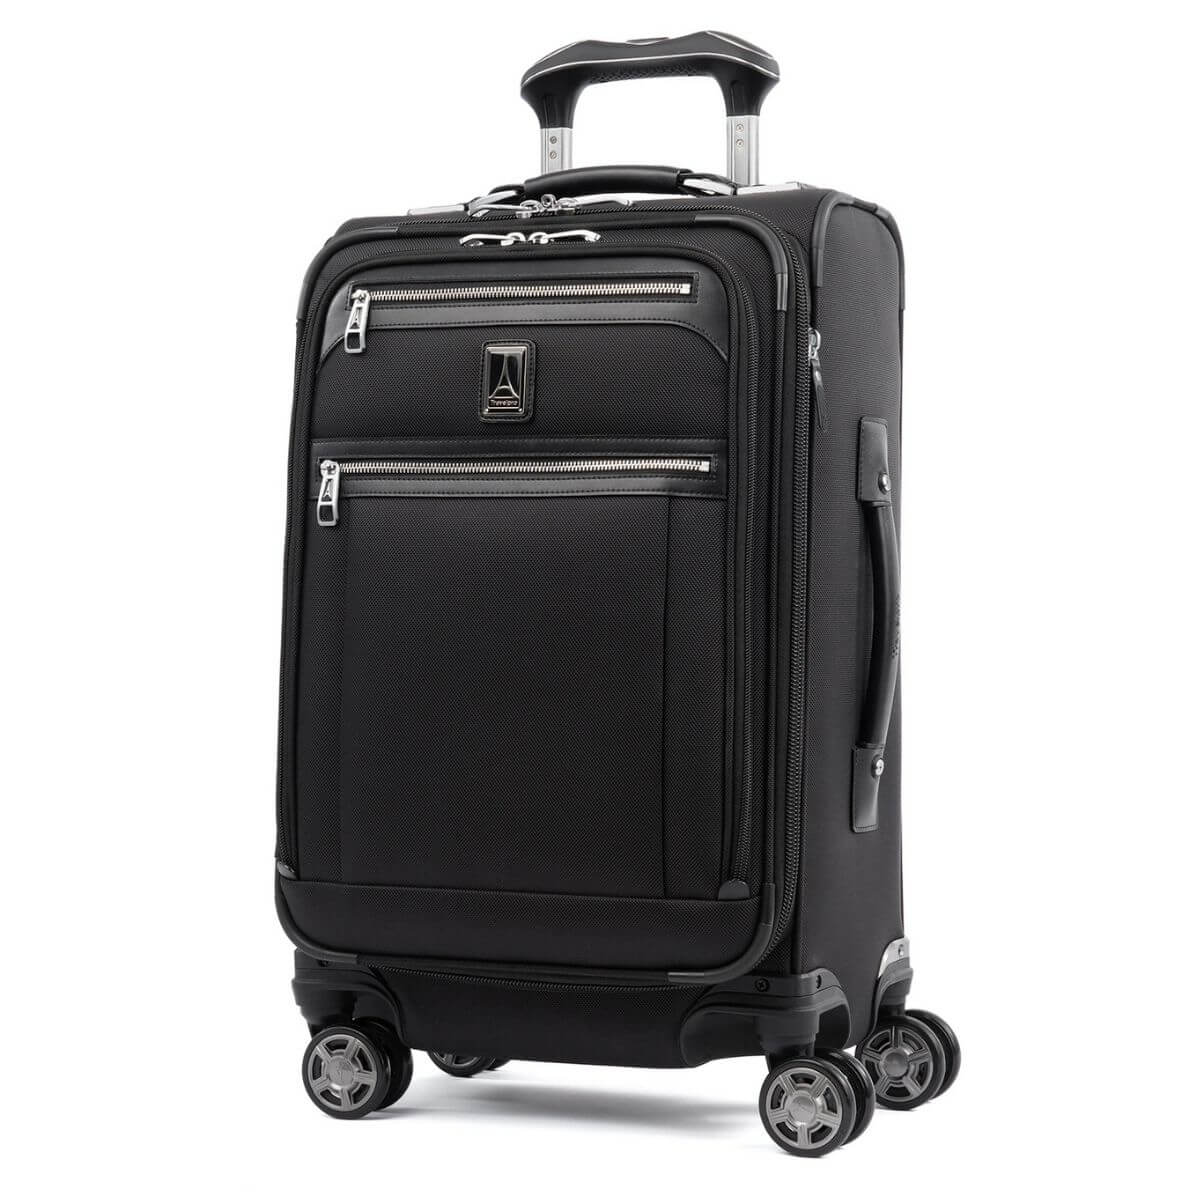 Black Travelpro soft-shell carry-on luggage.